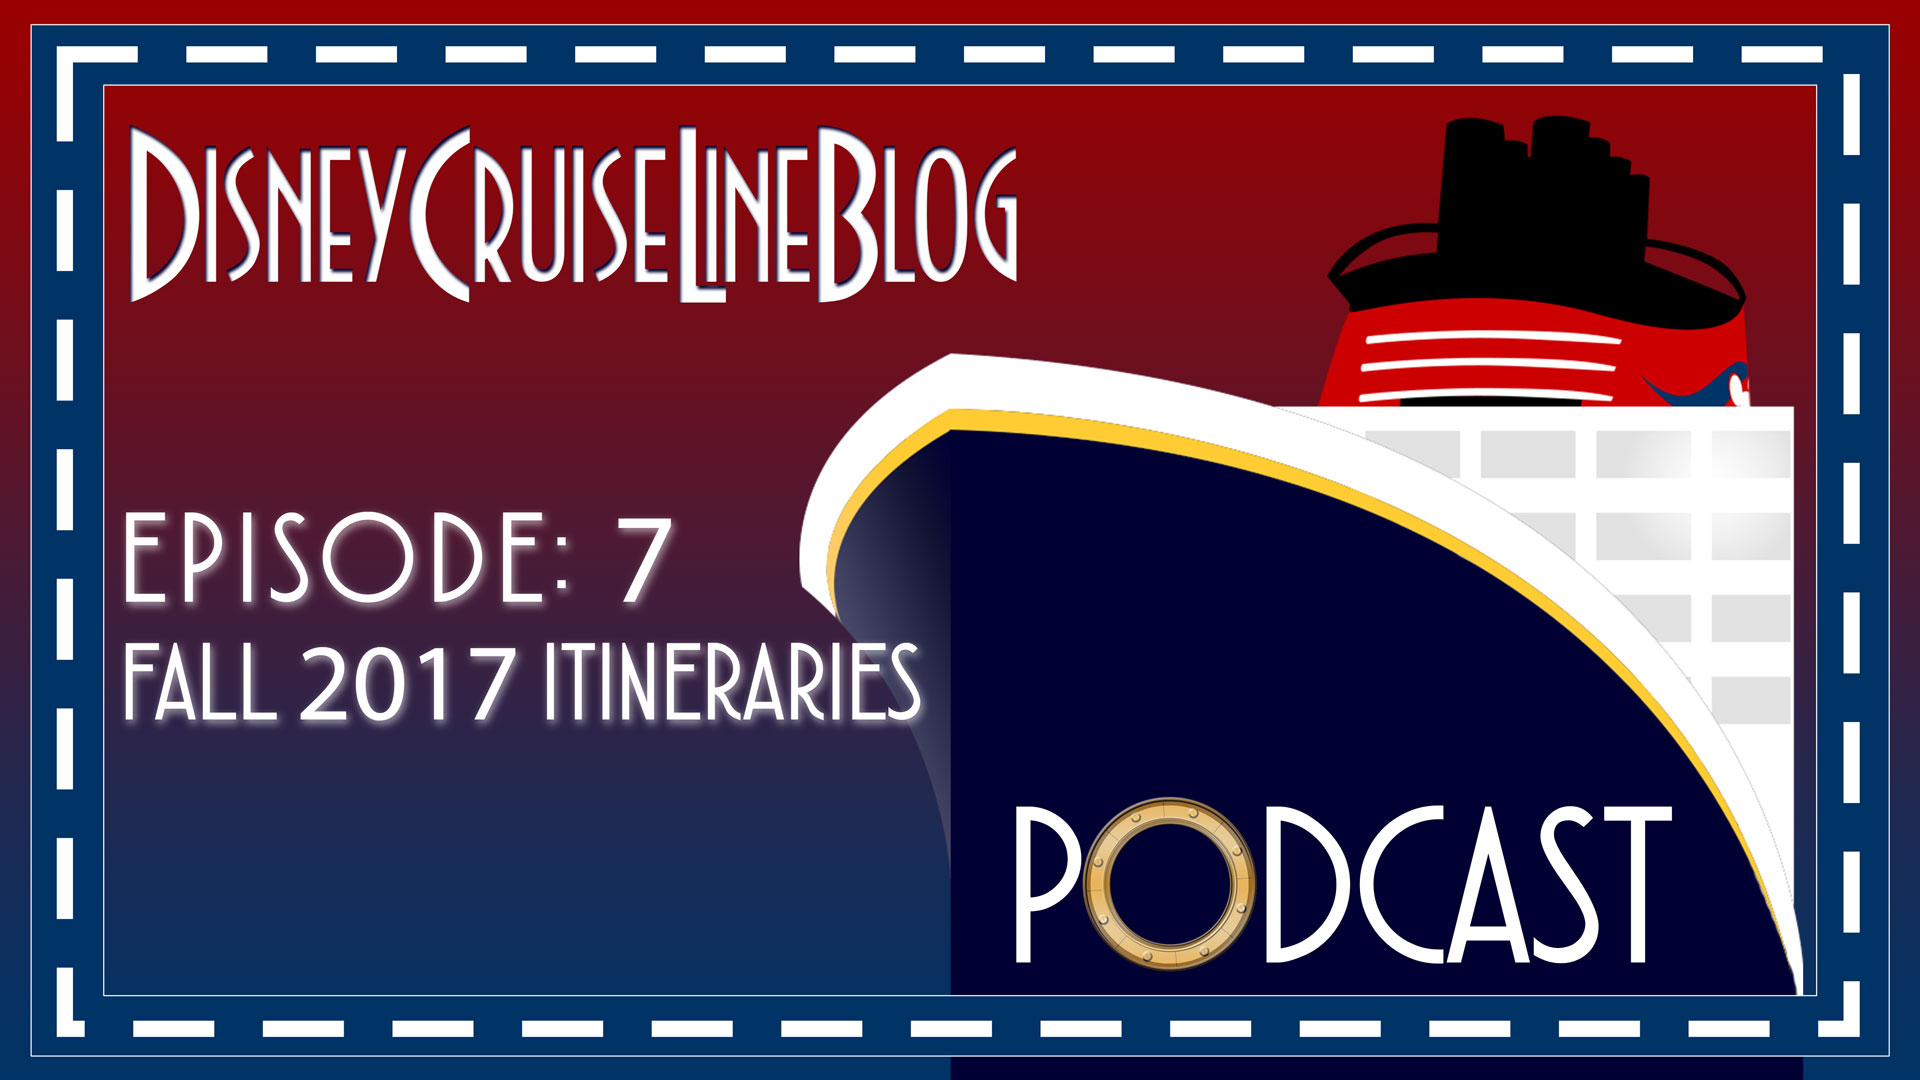 DCL Blog Podcast Episode 7 Fall 2017 Itineraries